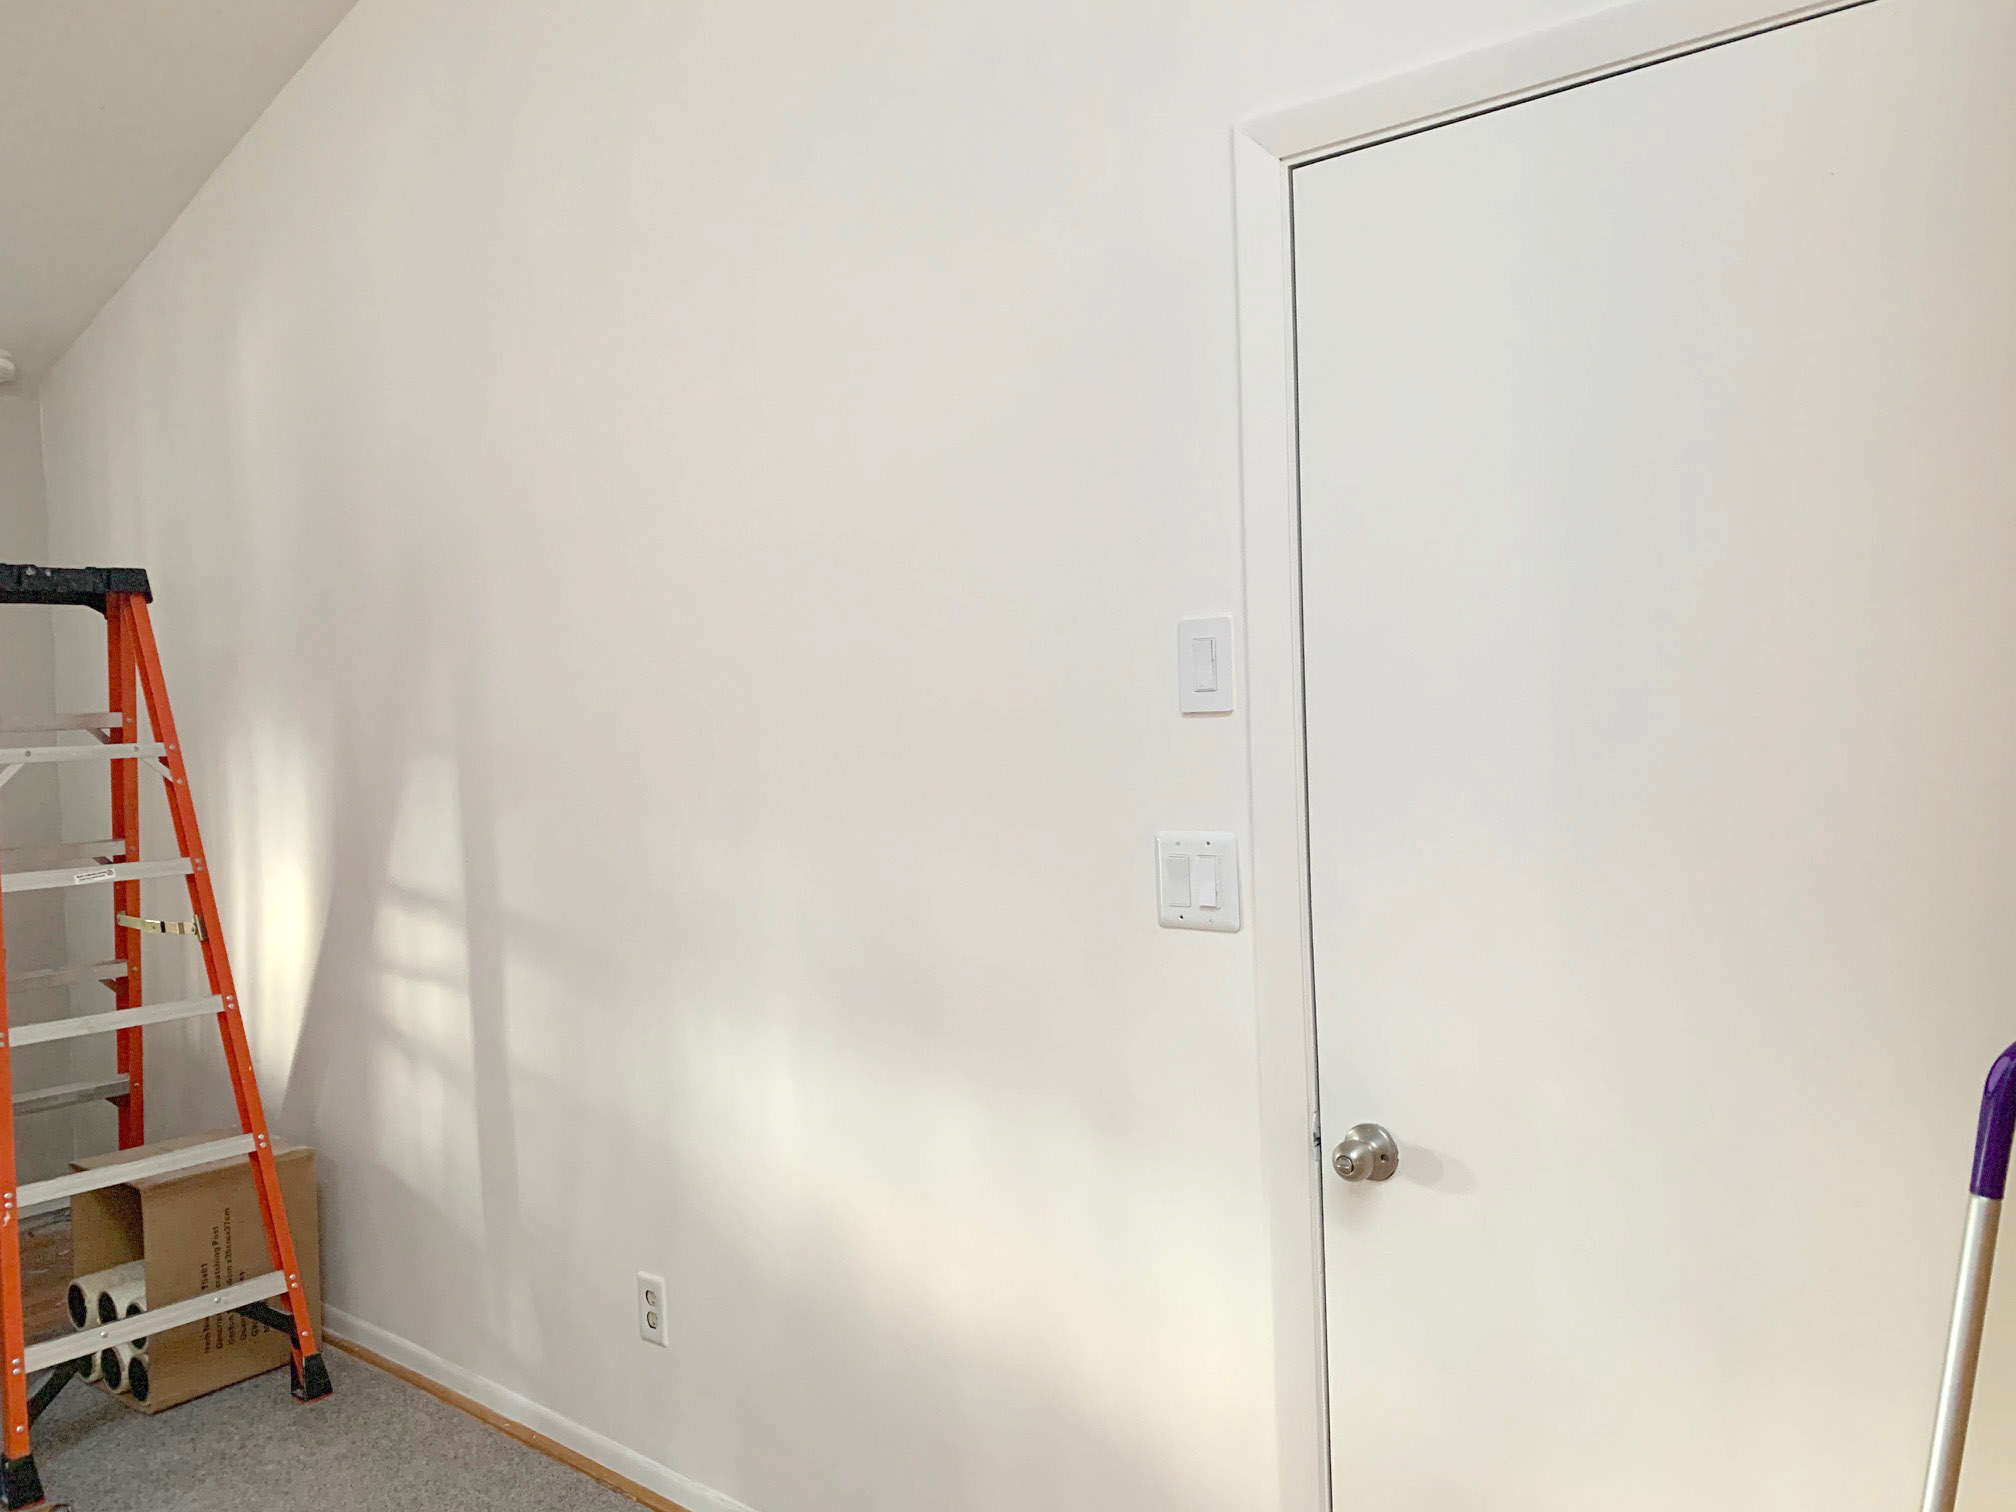 blank wall with ladder